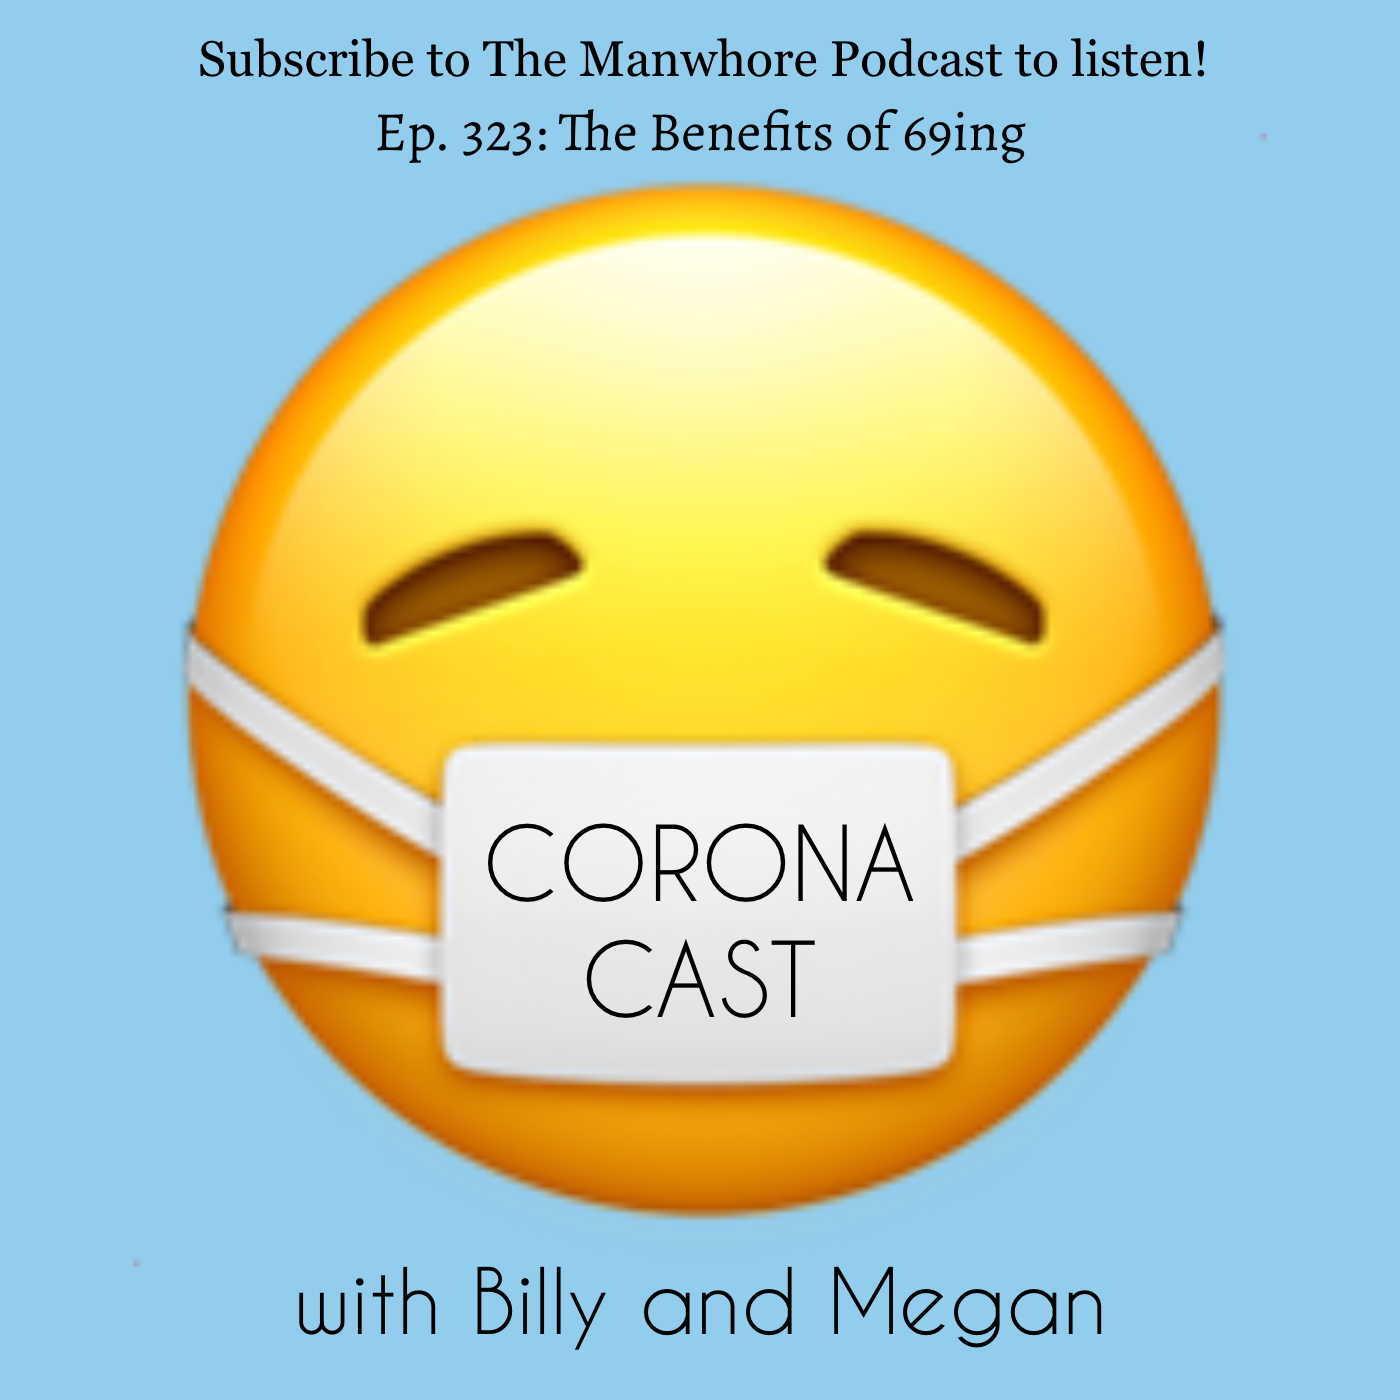 The Manwhore Podcast: A Sex-Positive Quest - Ep. 323: Corona Cast Part 7 - The Benefit of 69ing